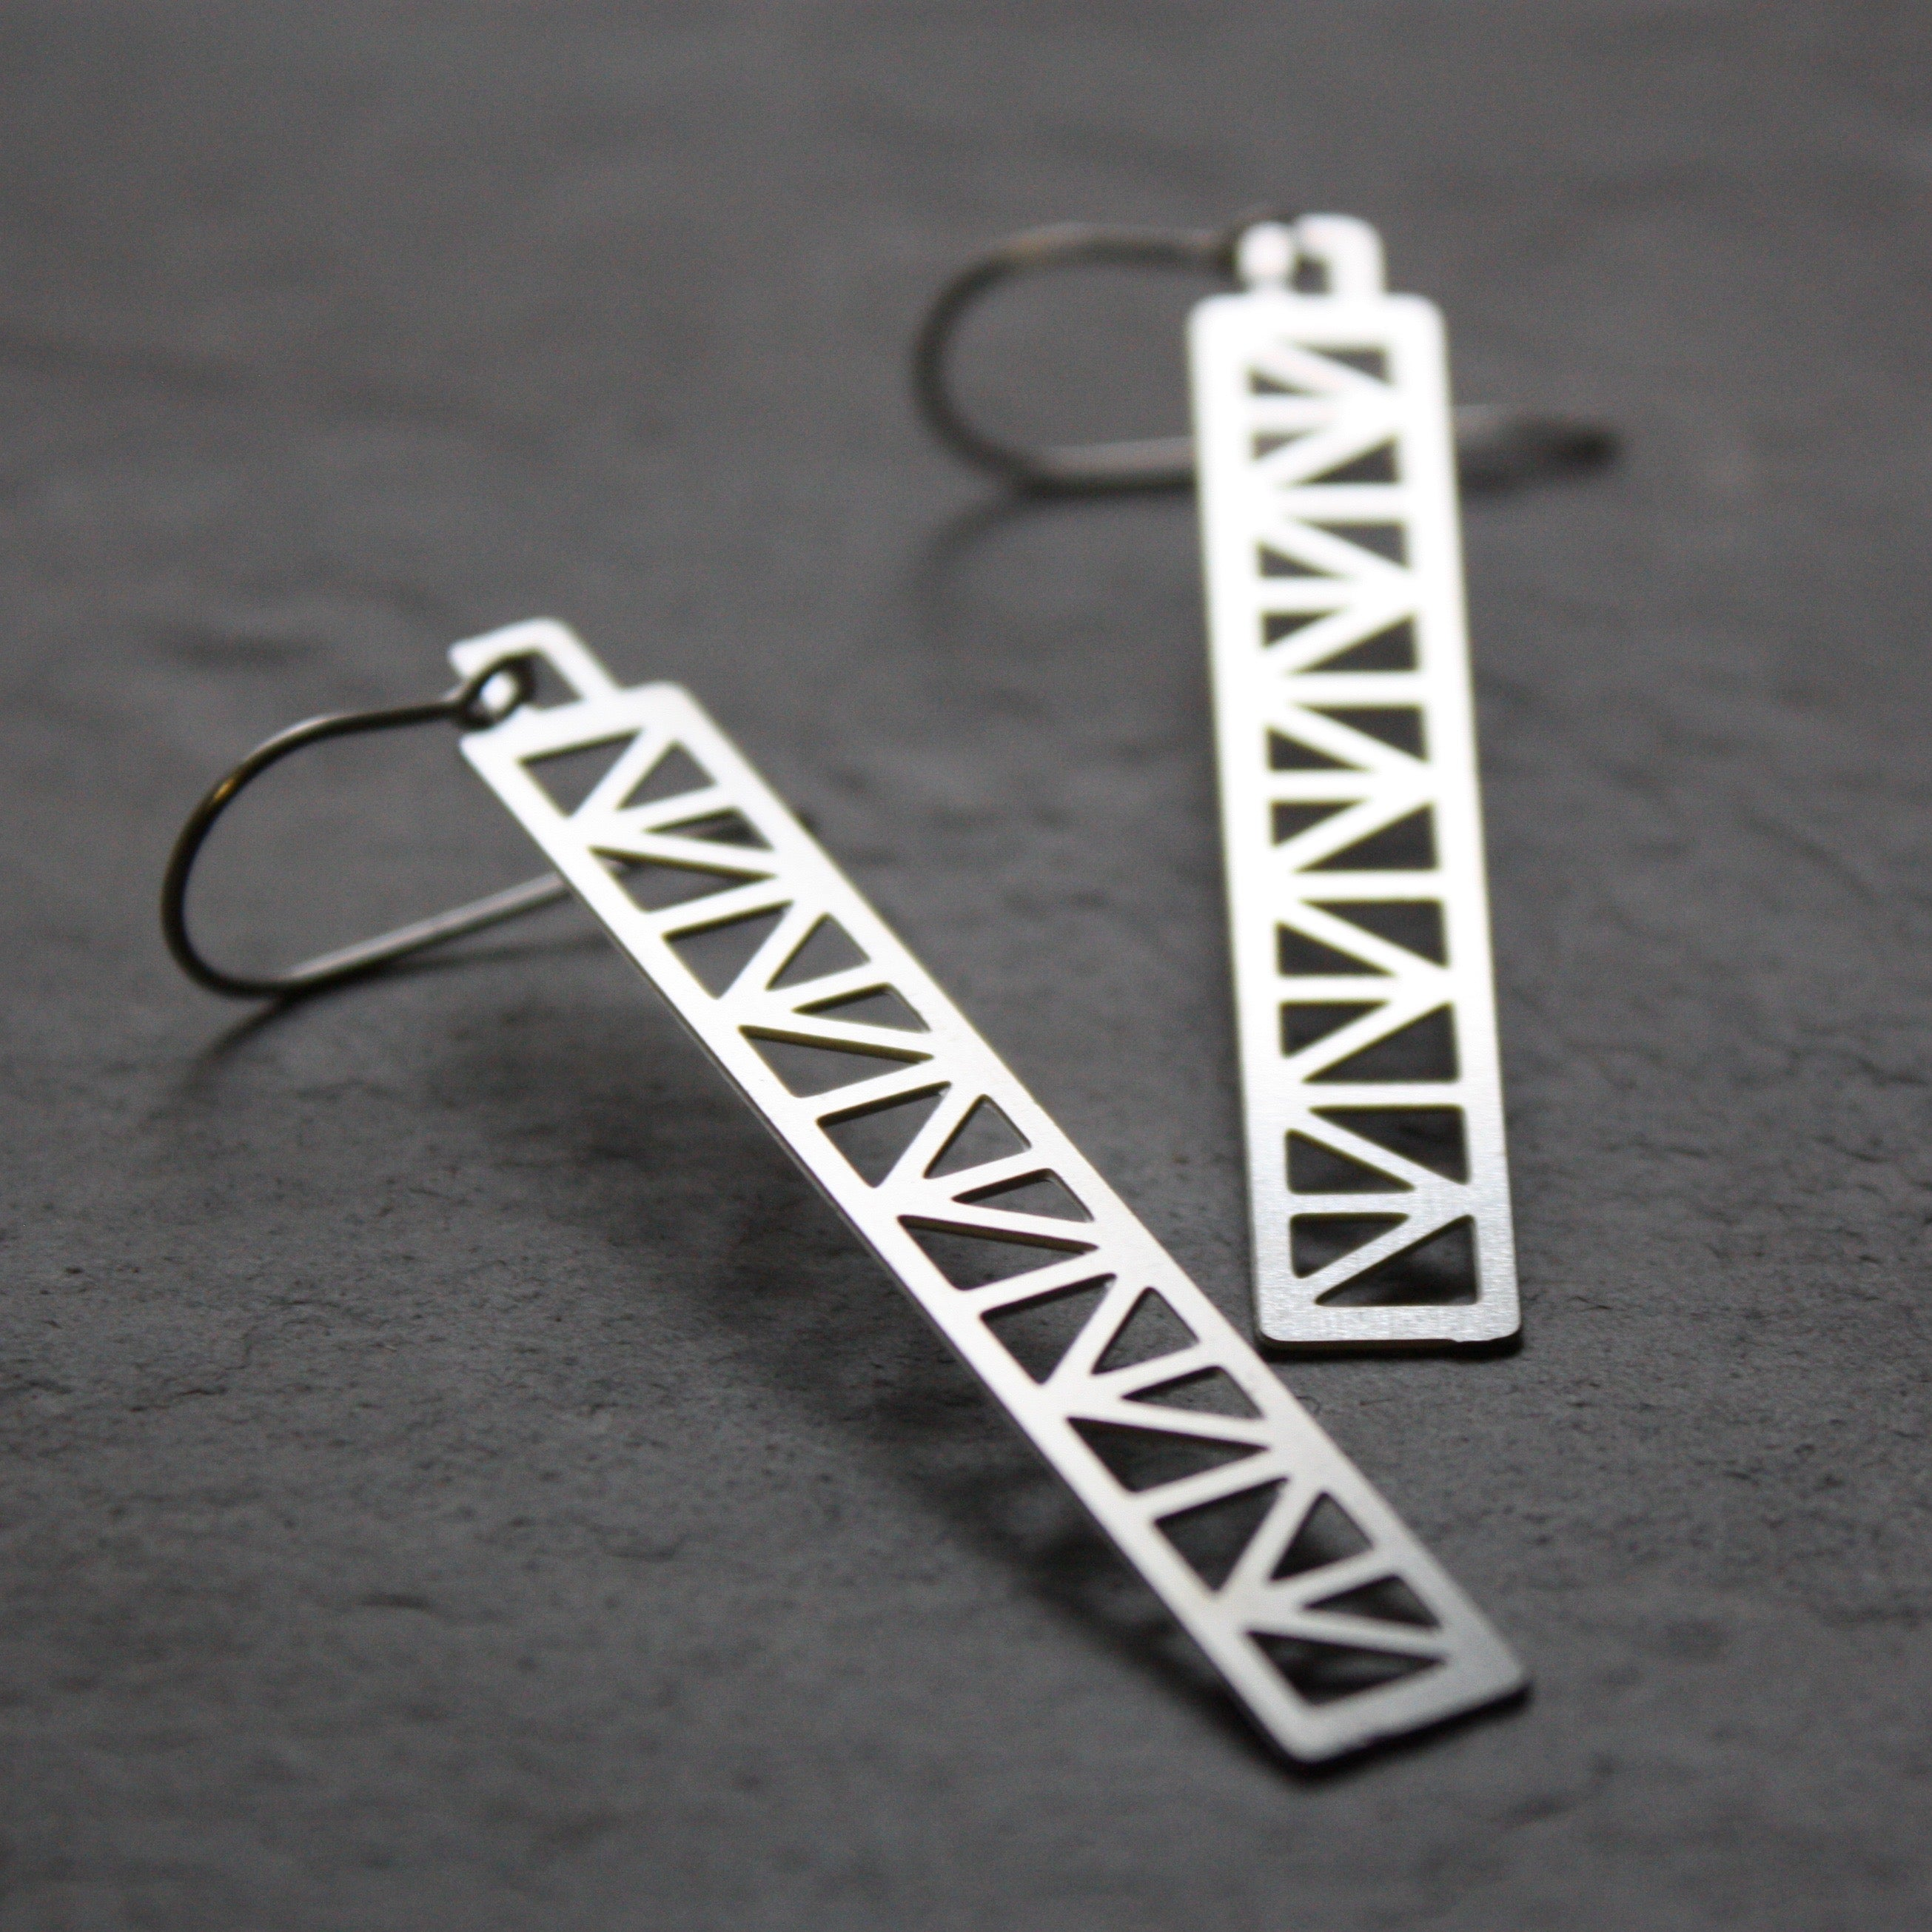 Peace Truss Earring design by Audra Azoury